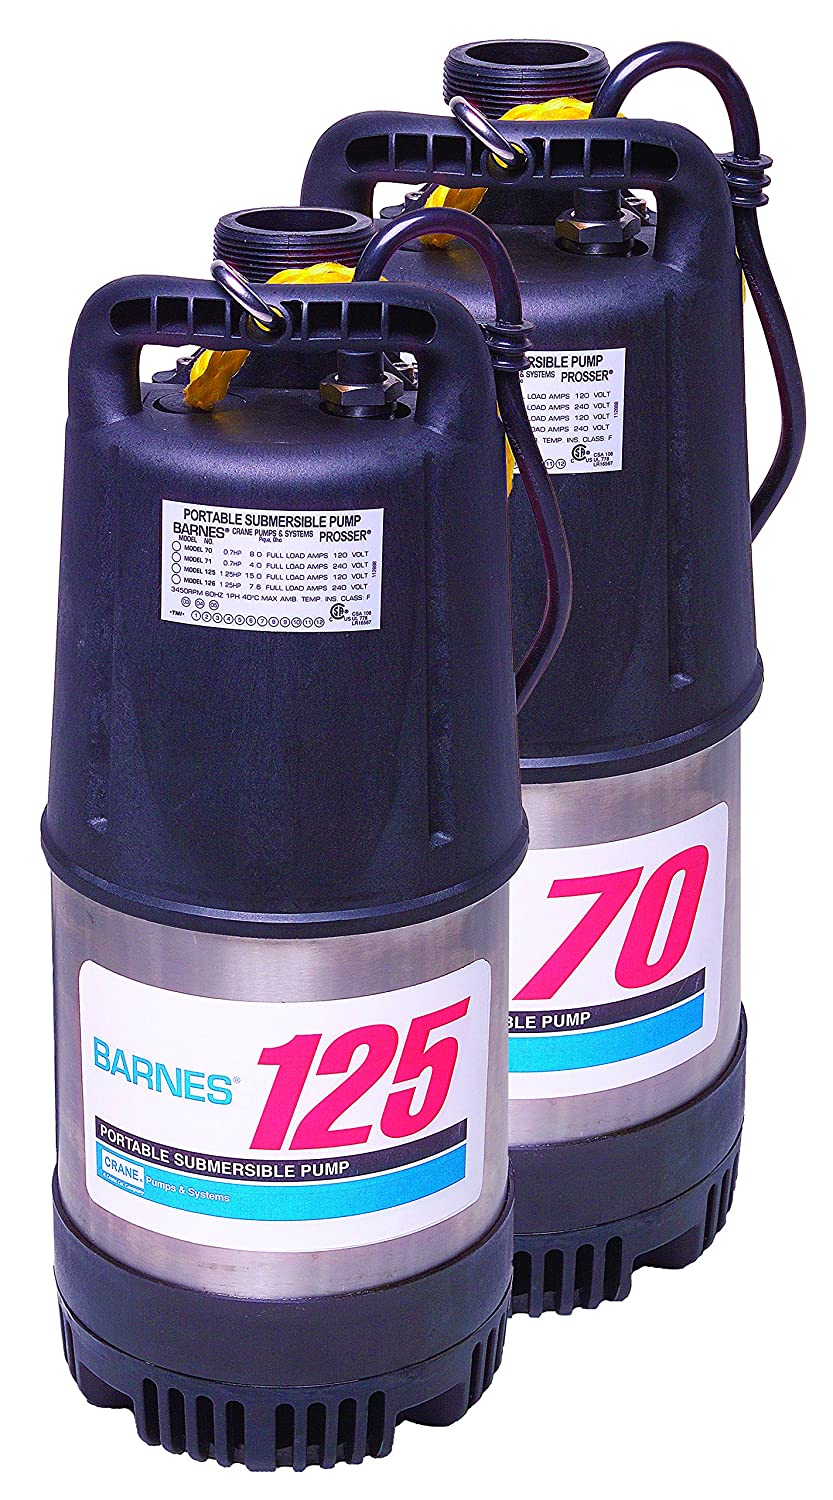 Barnes Model 70 Submersible Recommended Dewatering Max 46% OFF Pump 5 10-HP 10 – 7